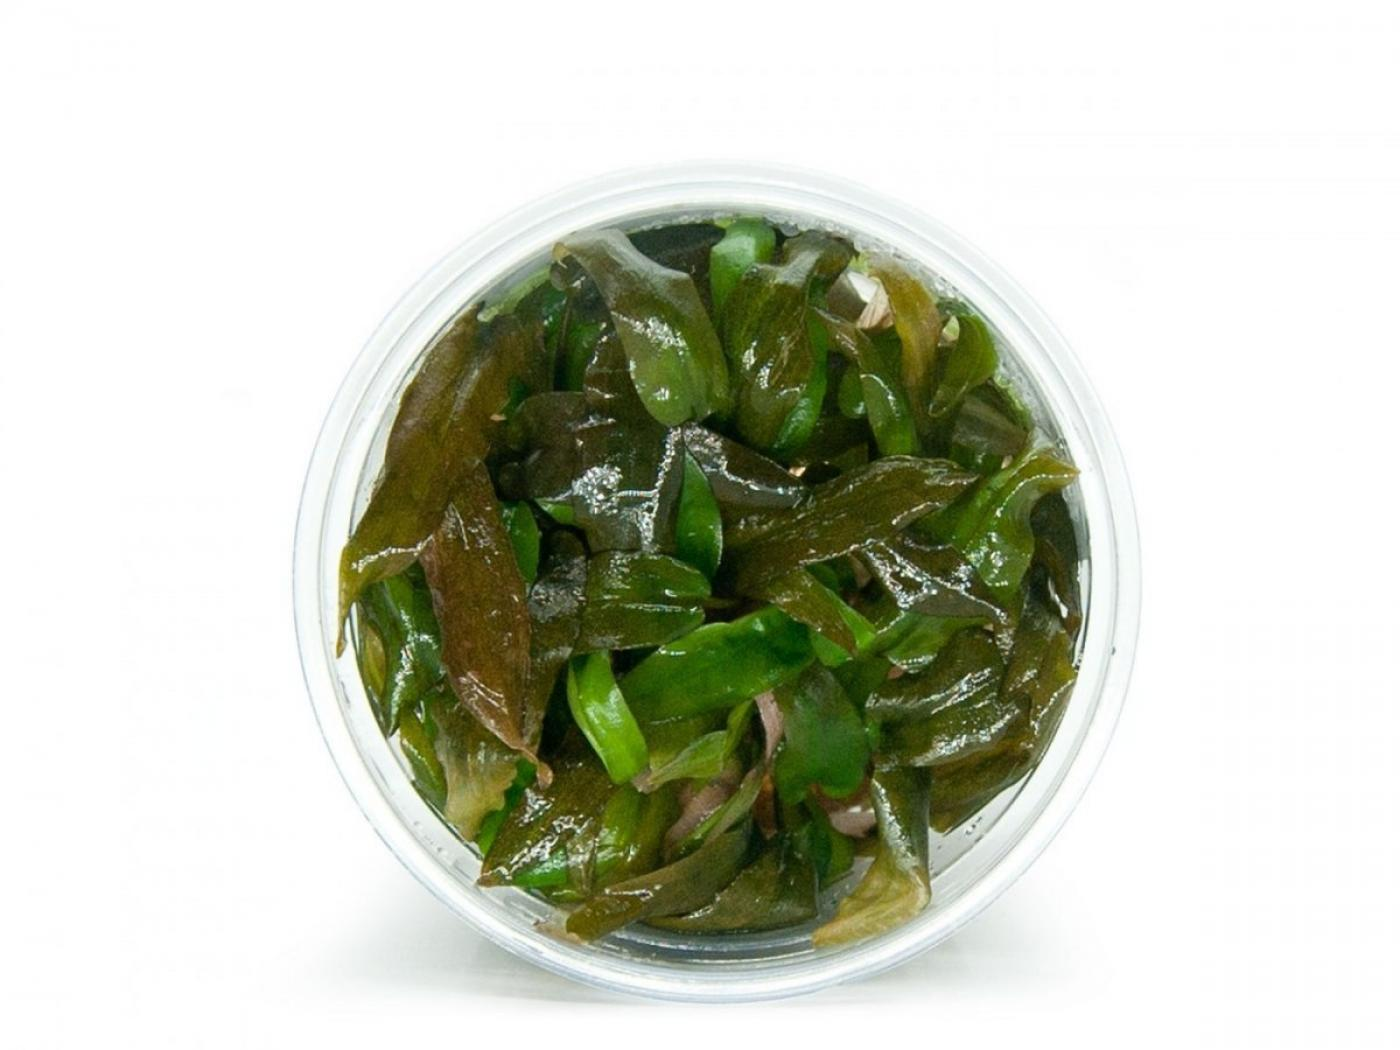 CRYPTOCORYNE WENDTII Brown - In Vitro